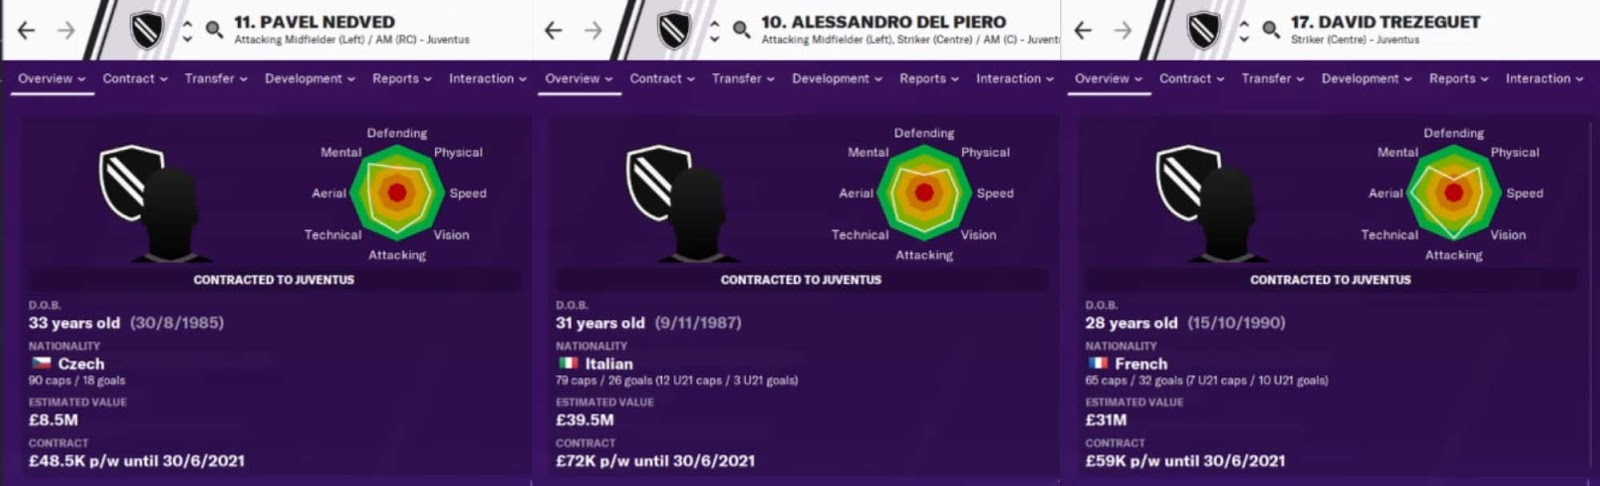 2006/07 Database for Football Manager 2020